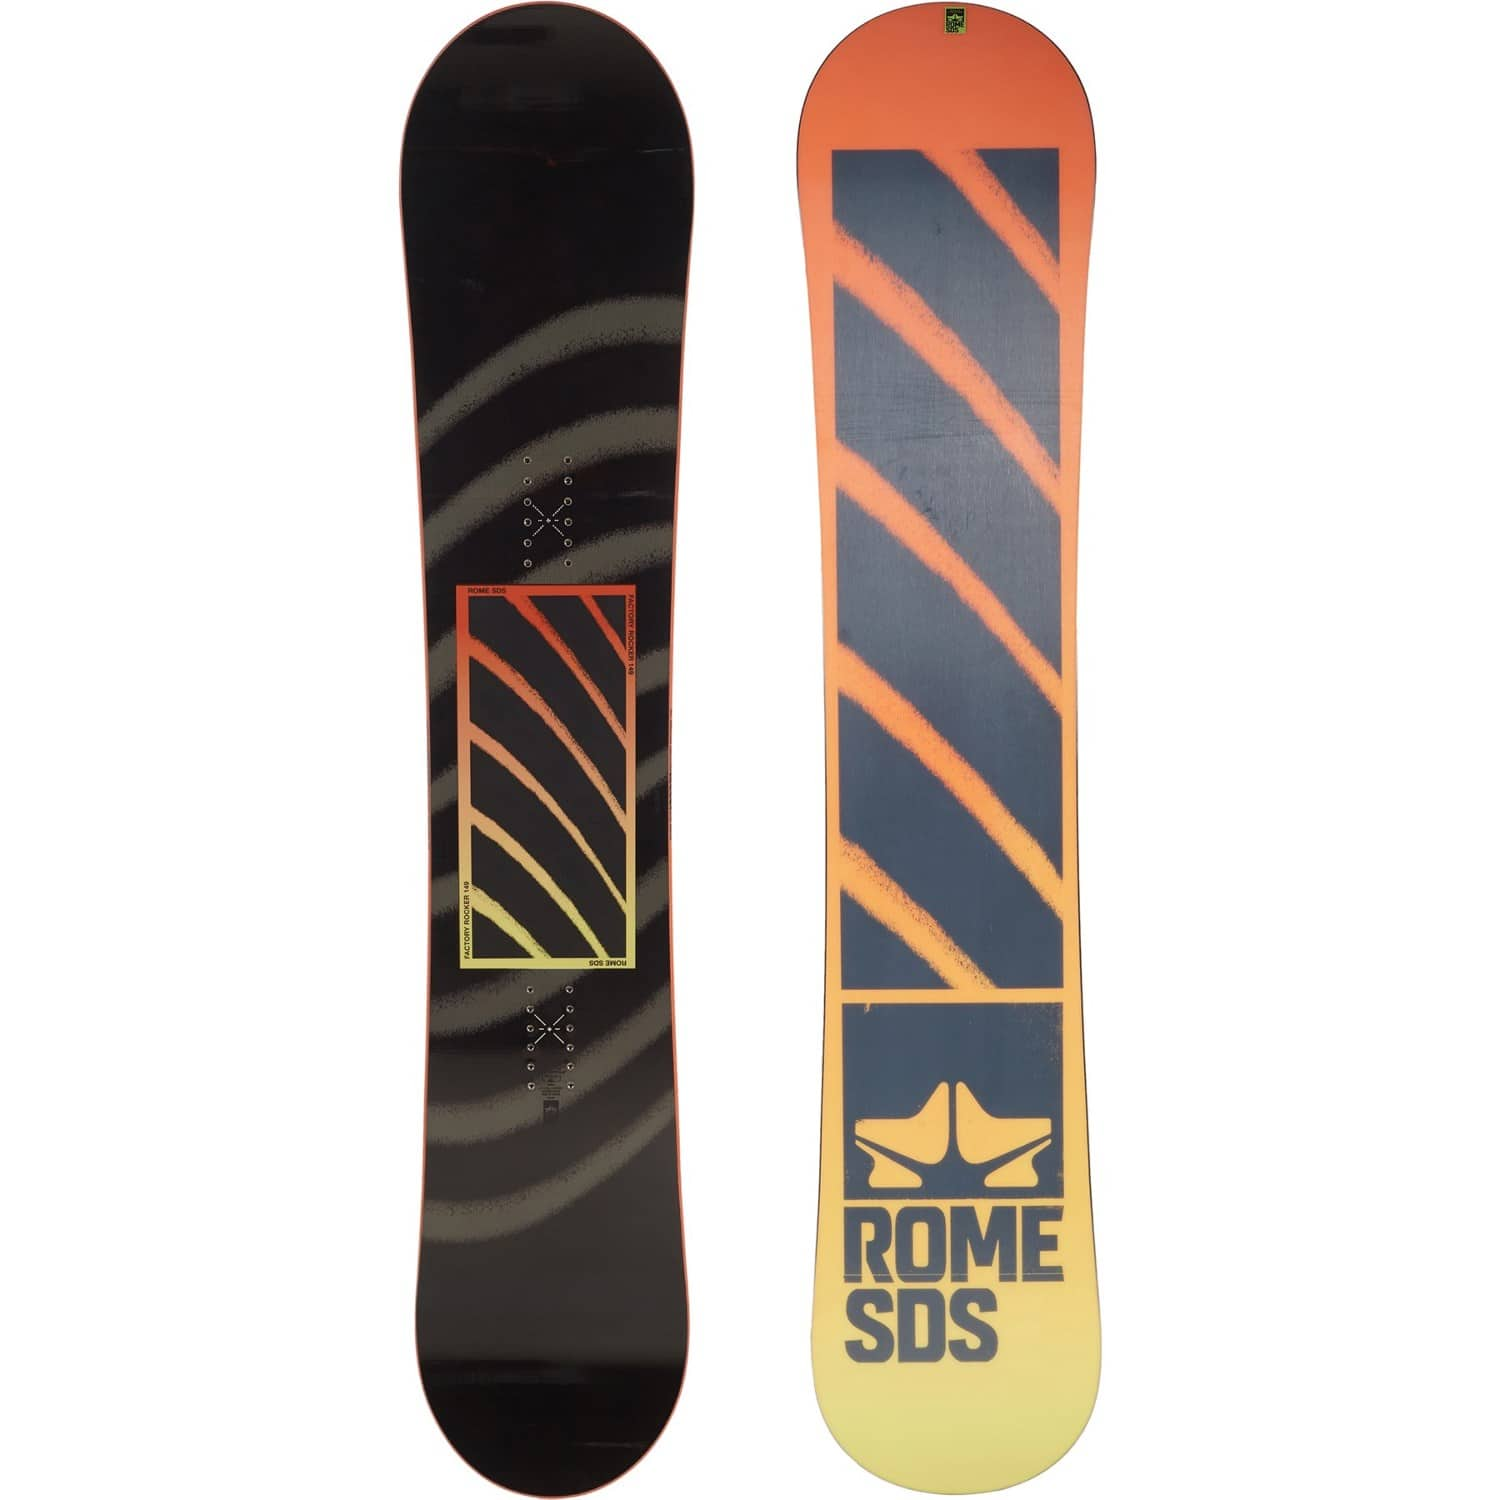 Snowboard Clearance at Sierra.com. Limited Quantities, free shipping. Rome, High Society, Launch, more